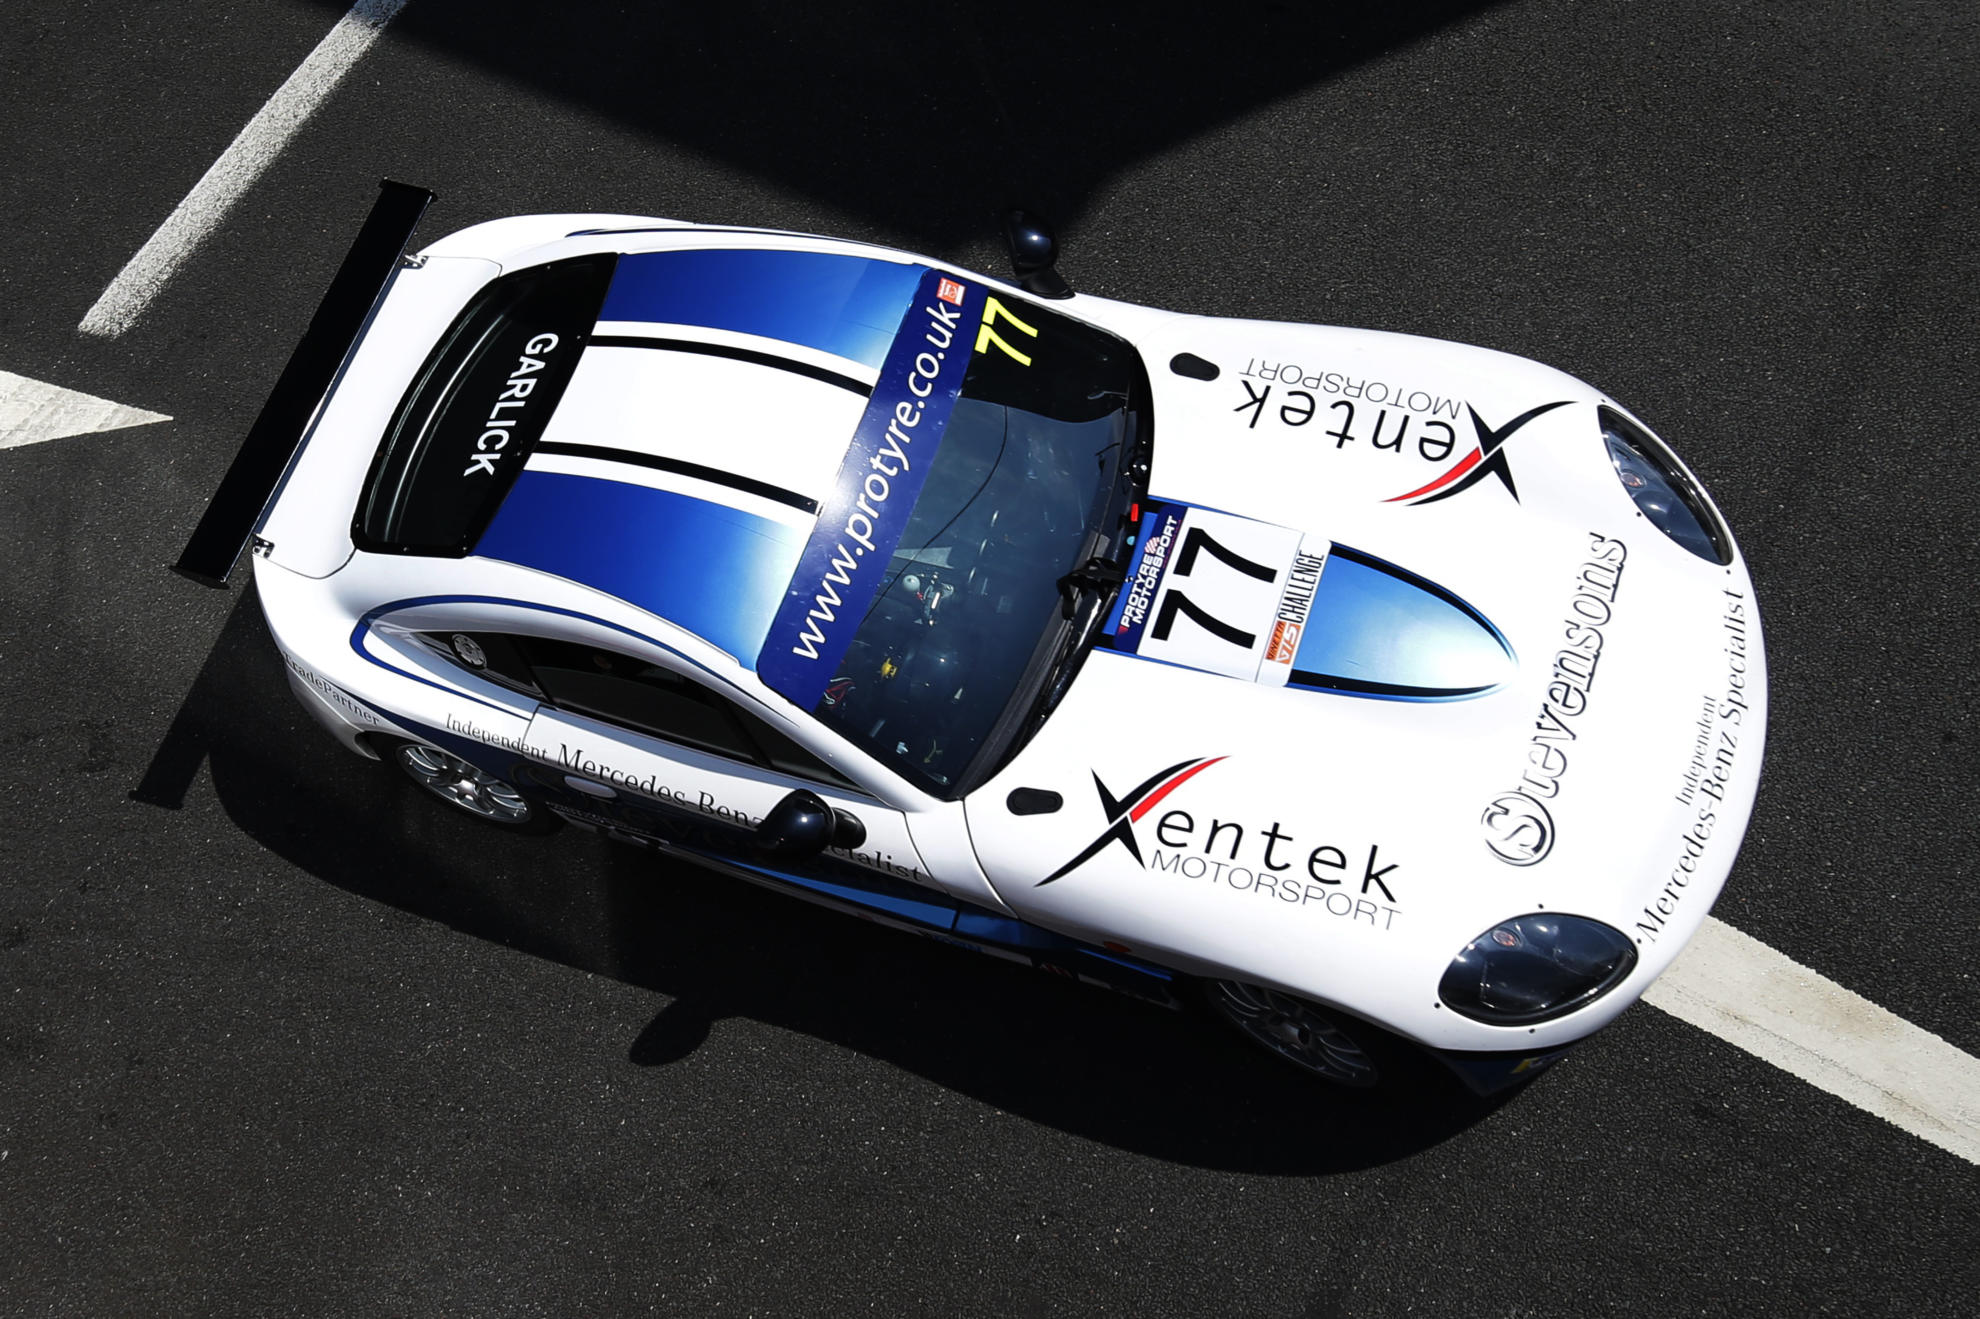 Xentek Motorsport Sign Talented Trio For Ginetta GT5 Challenge